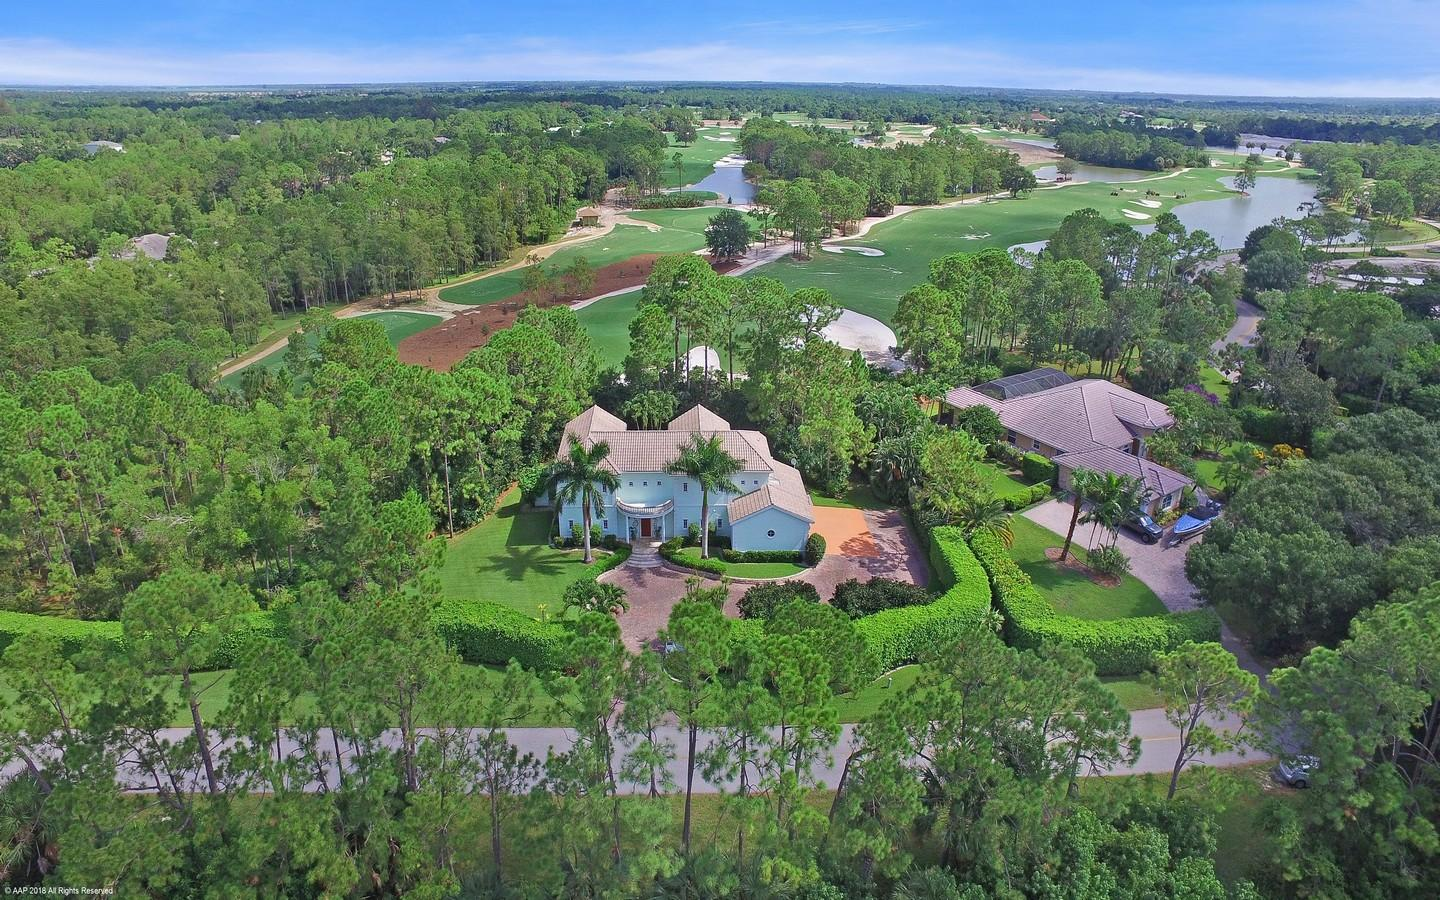 New Home for sale at 3651 Tailwinds Road in Jupiter